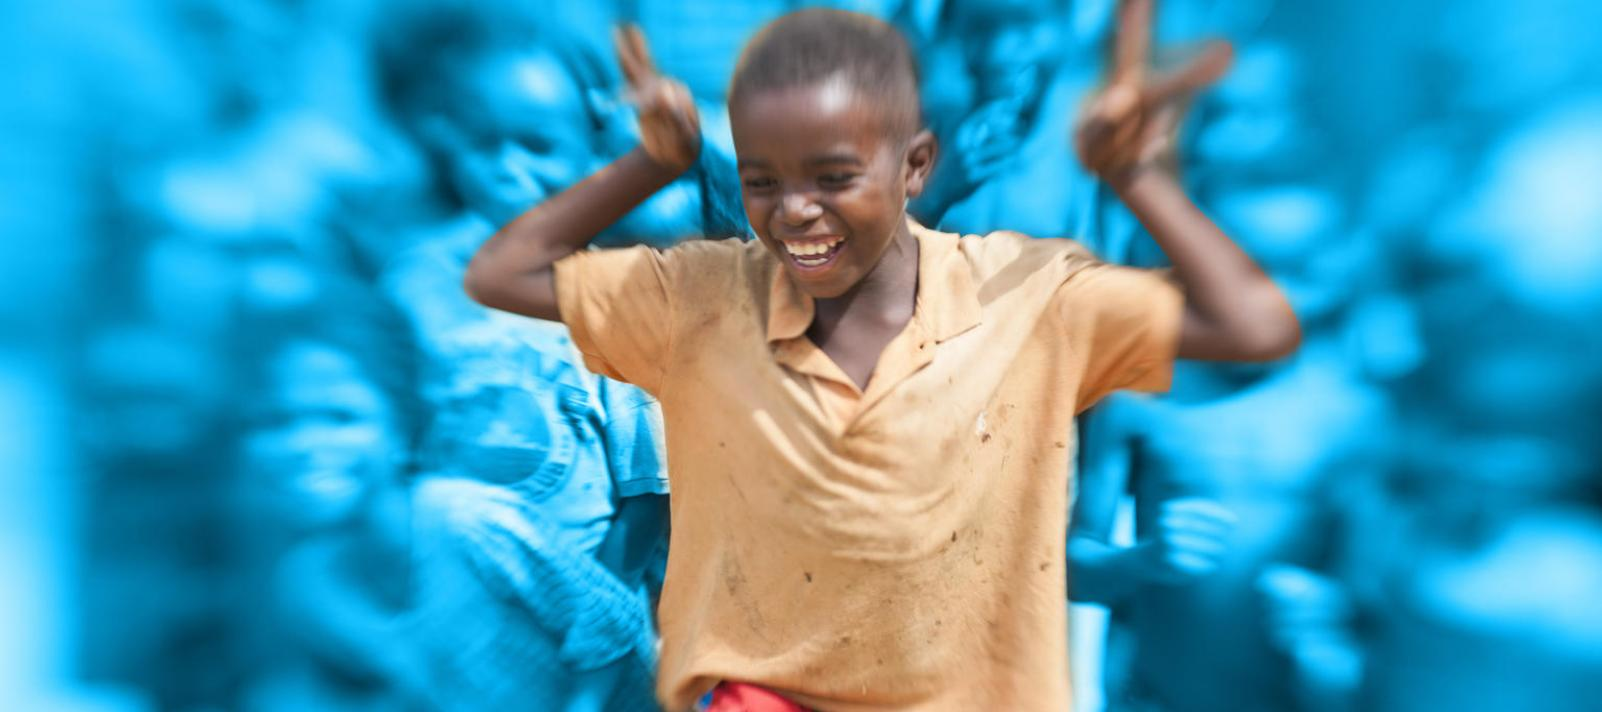 Bluewashed photo of a boy dancing